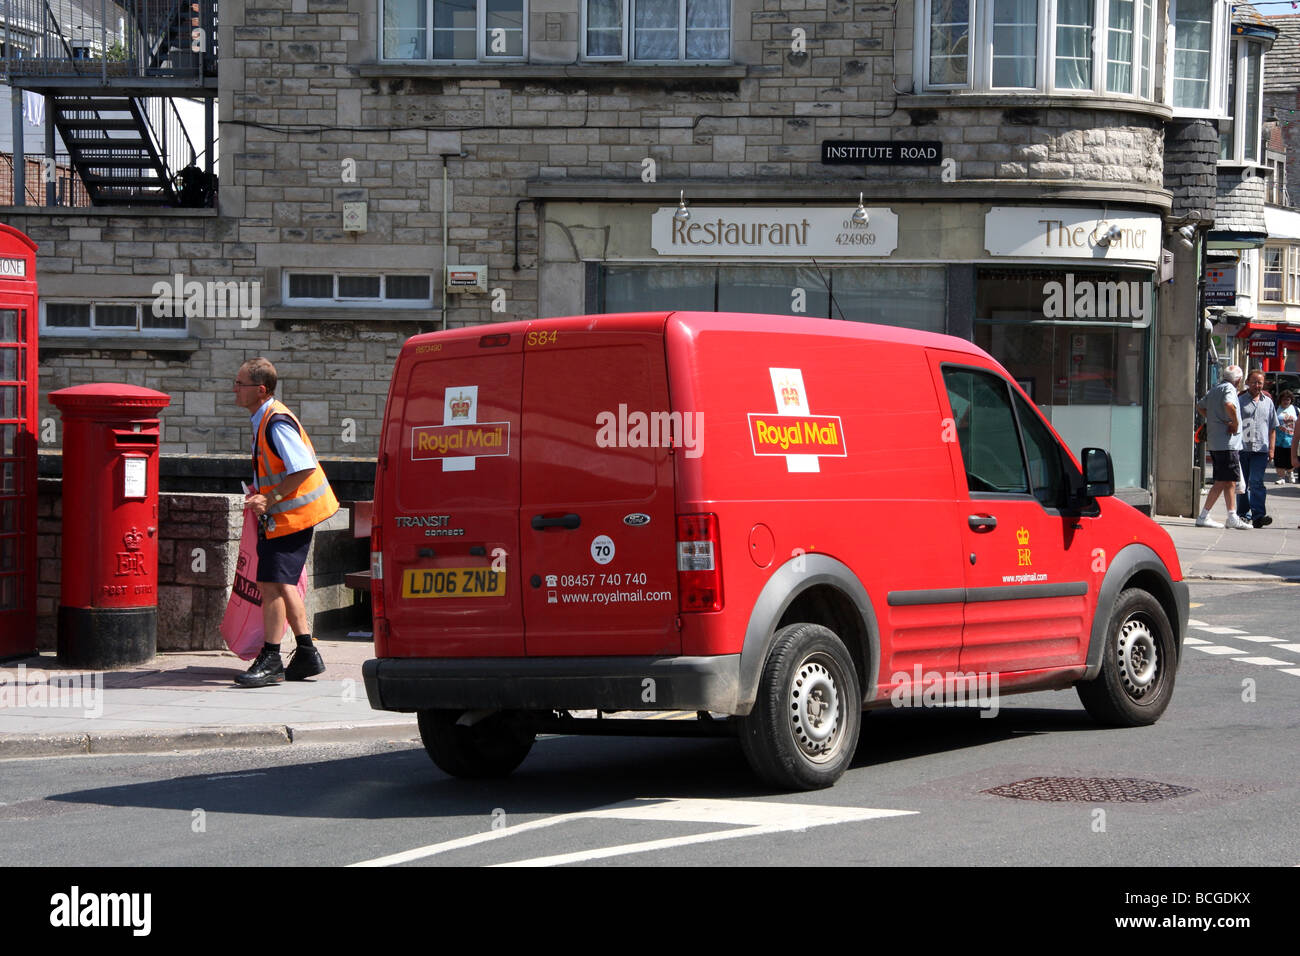 Postman collecting mail from Postbox, ready to load into Postvan - Stock Image